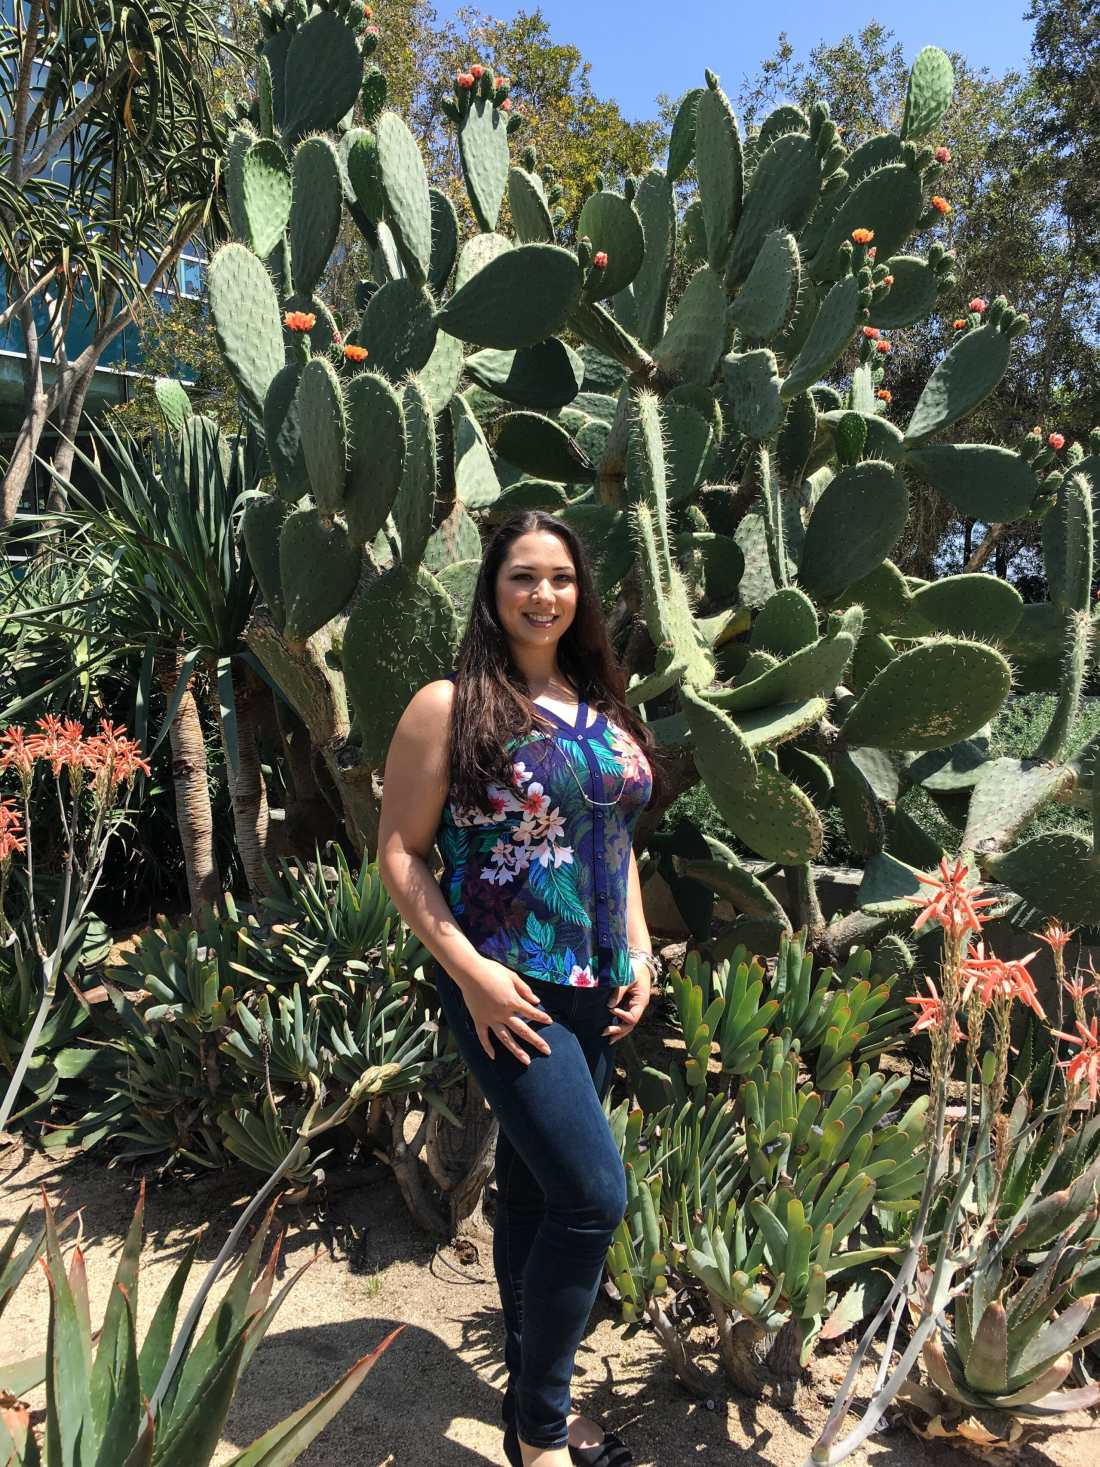 Jessica Simms Jays Sweet N Sour Life at Disney Channel animation Building standing infront of Cactus.